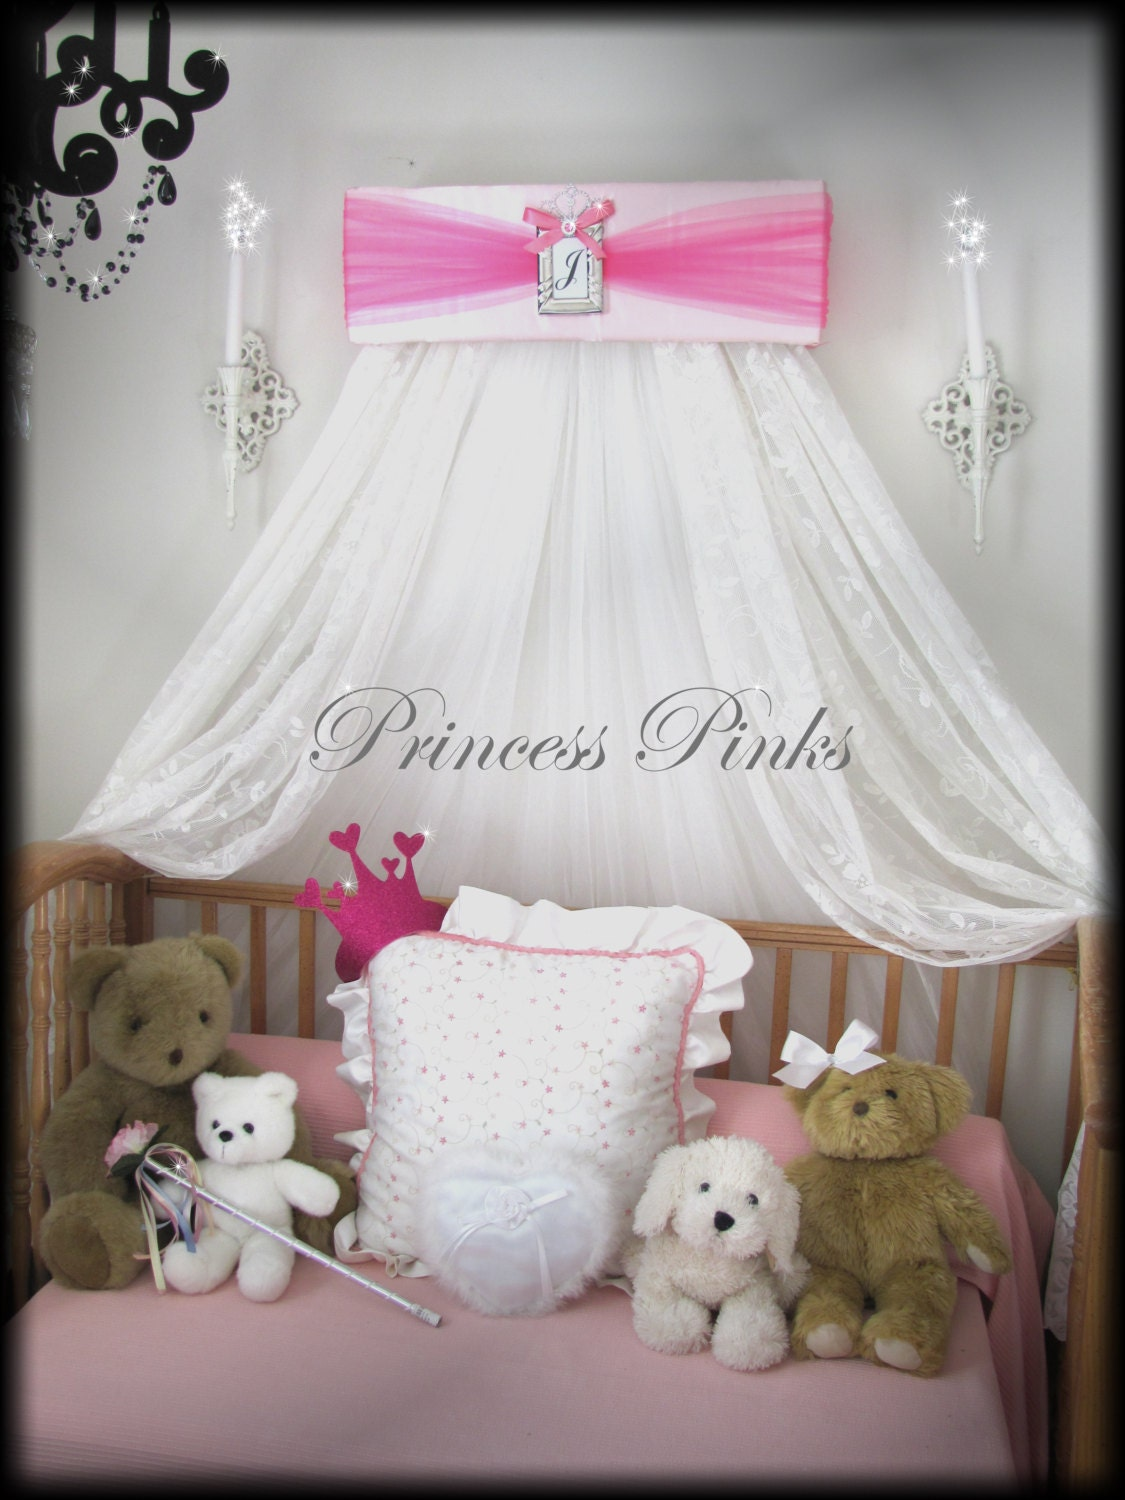 Princess crown tiara pinks crib bed canopy silver frame girls for Diy baby crib canopy